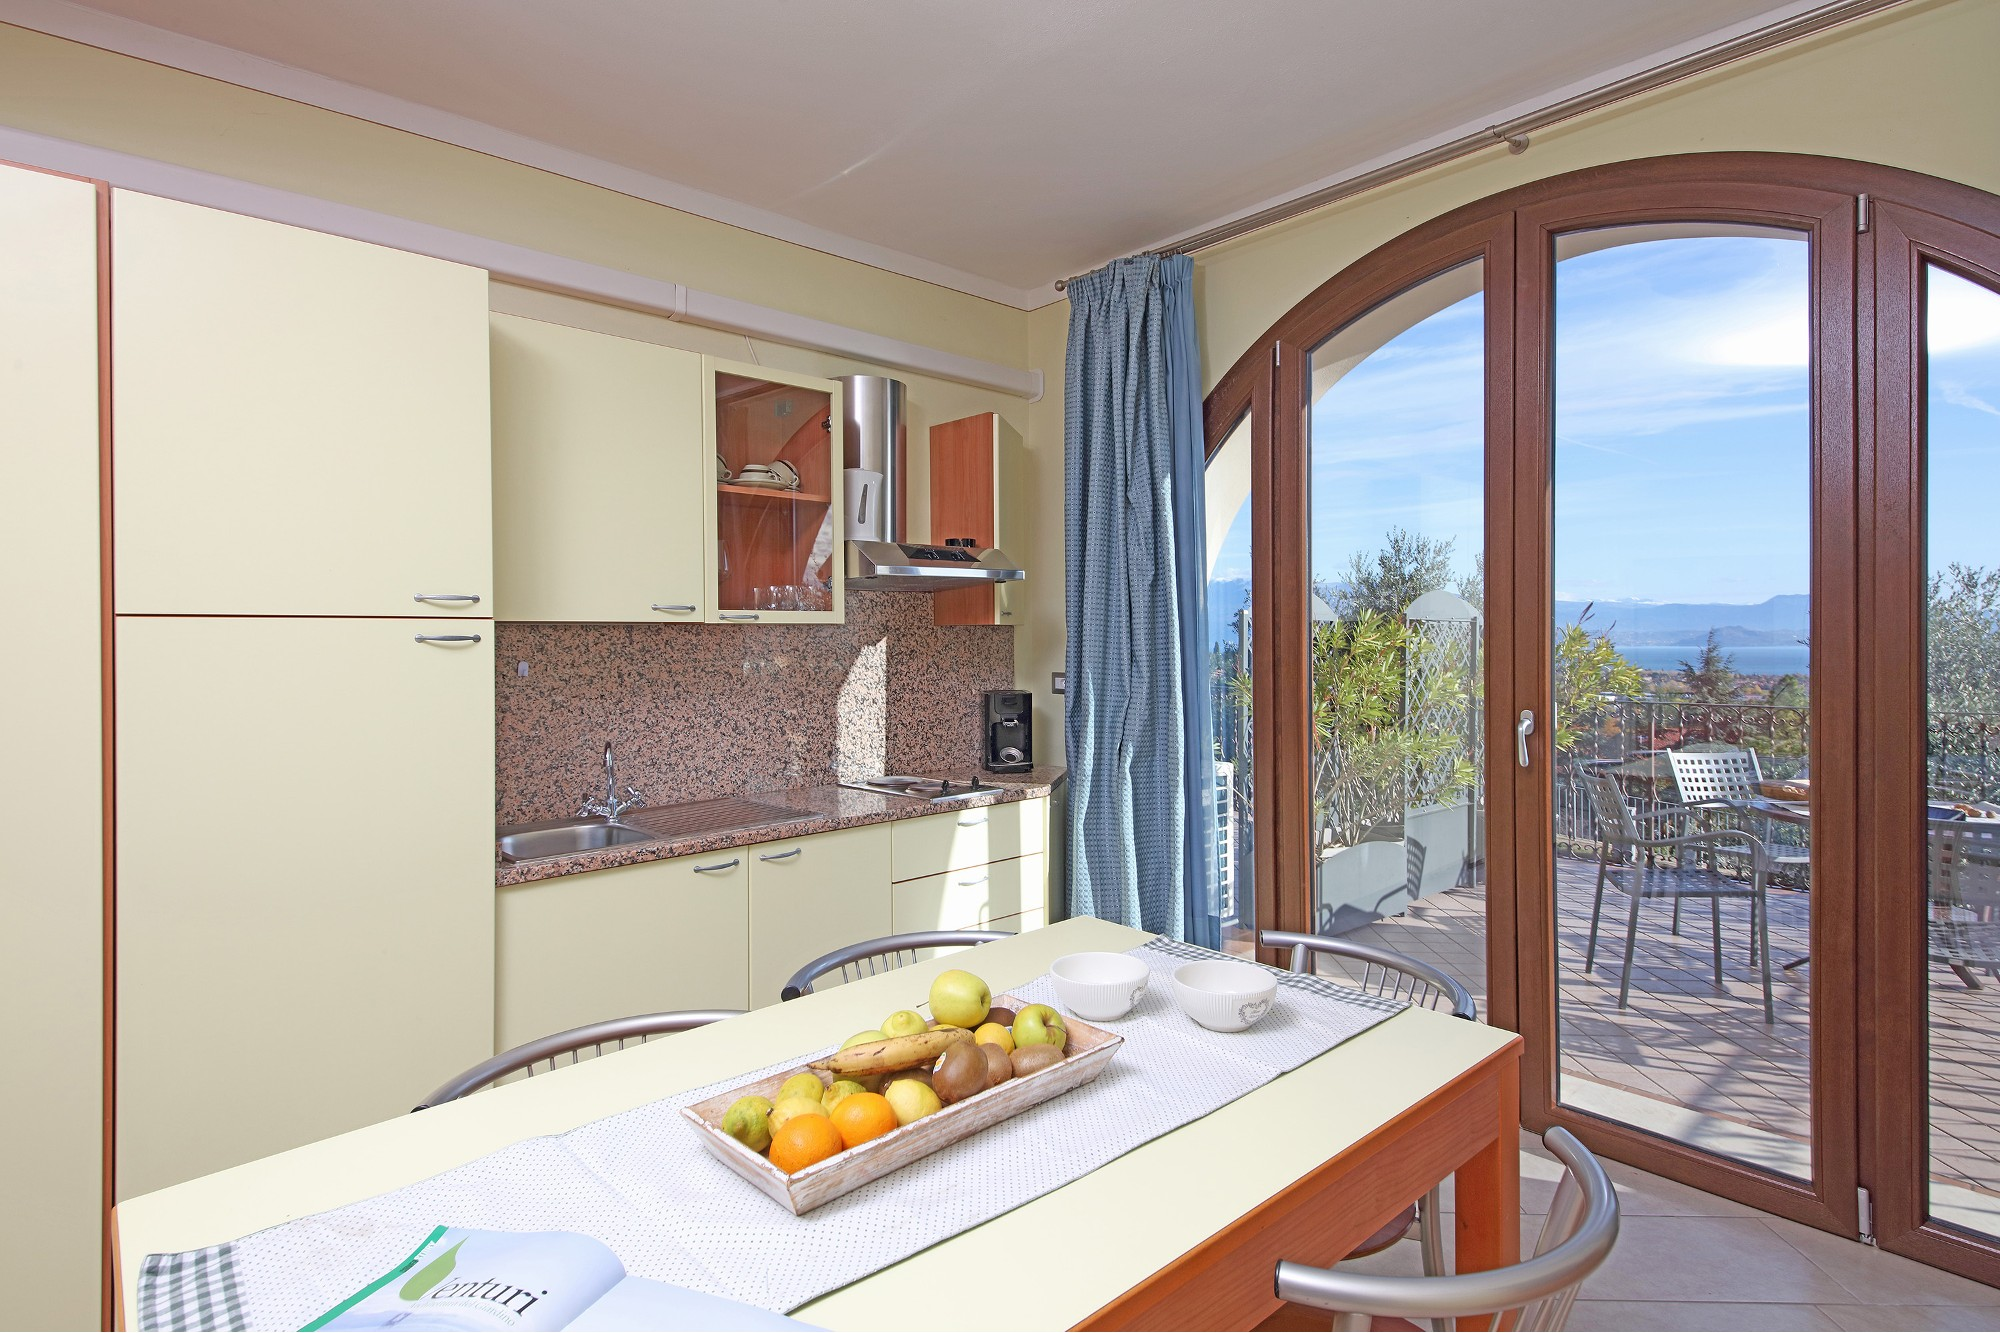 Residence San Rocco offers two-bedroom apartments for holiday